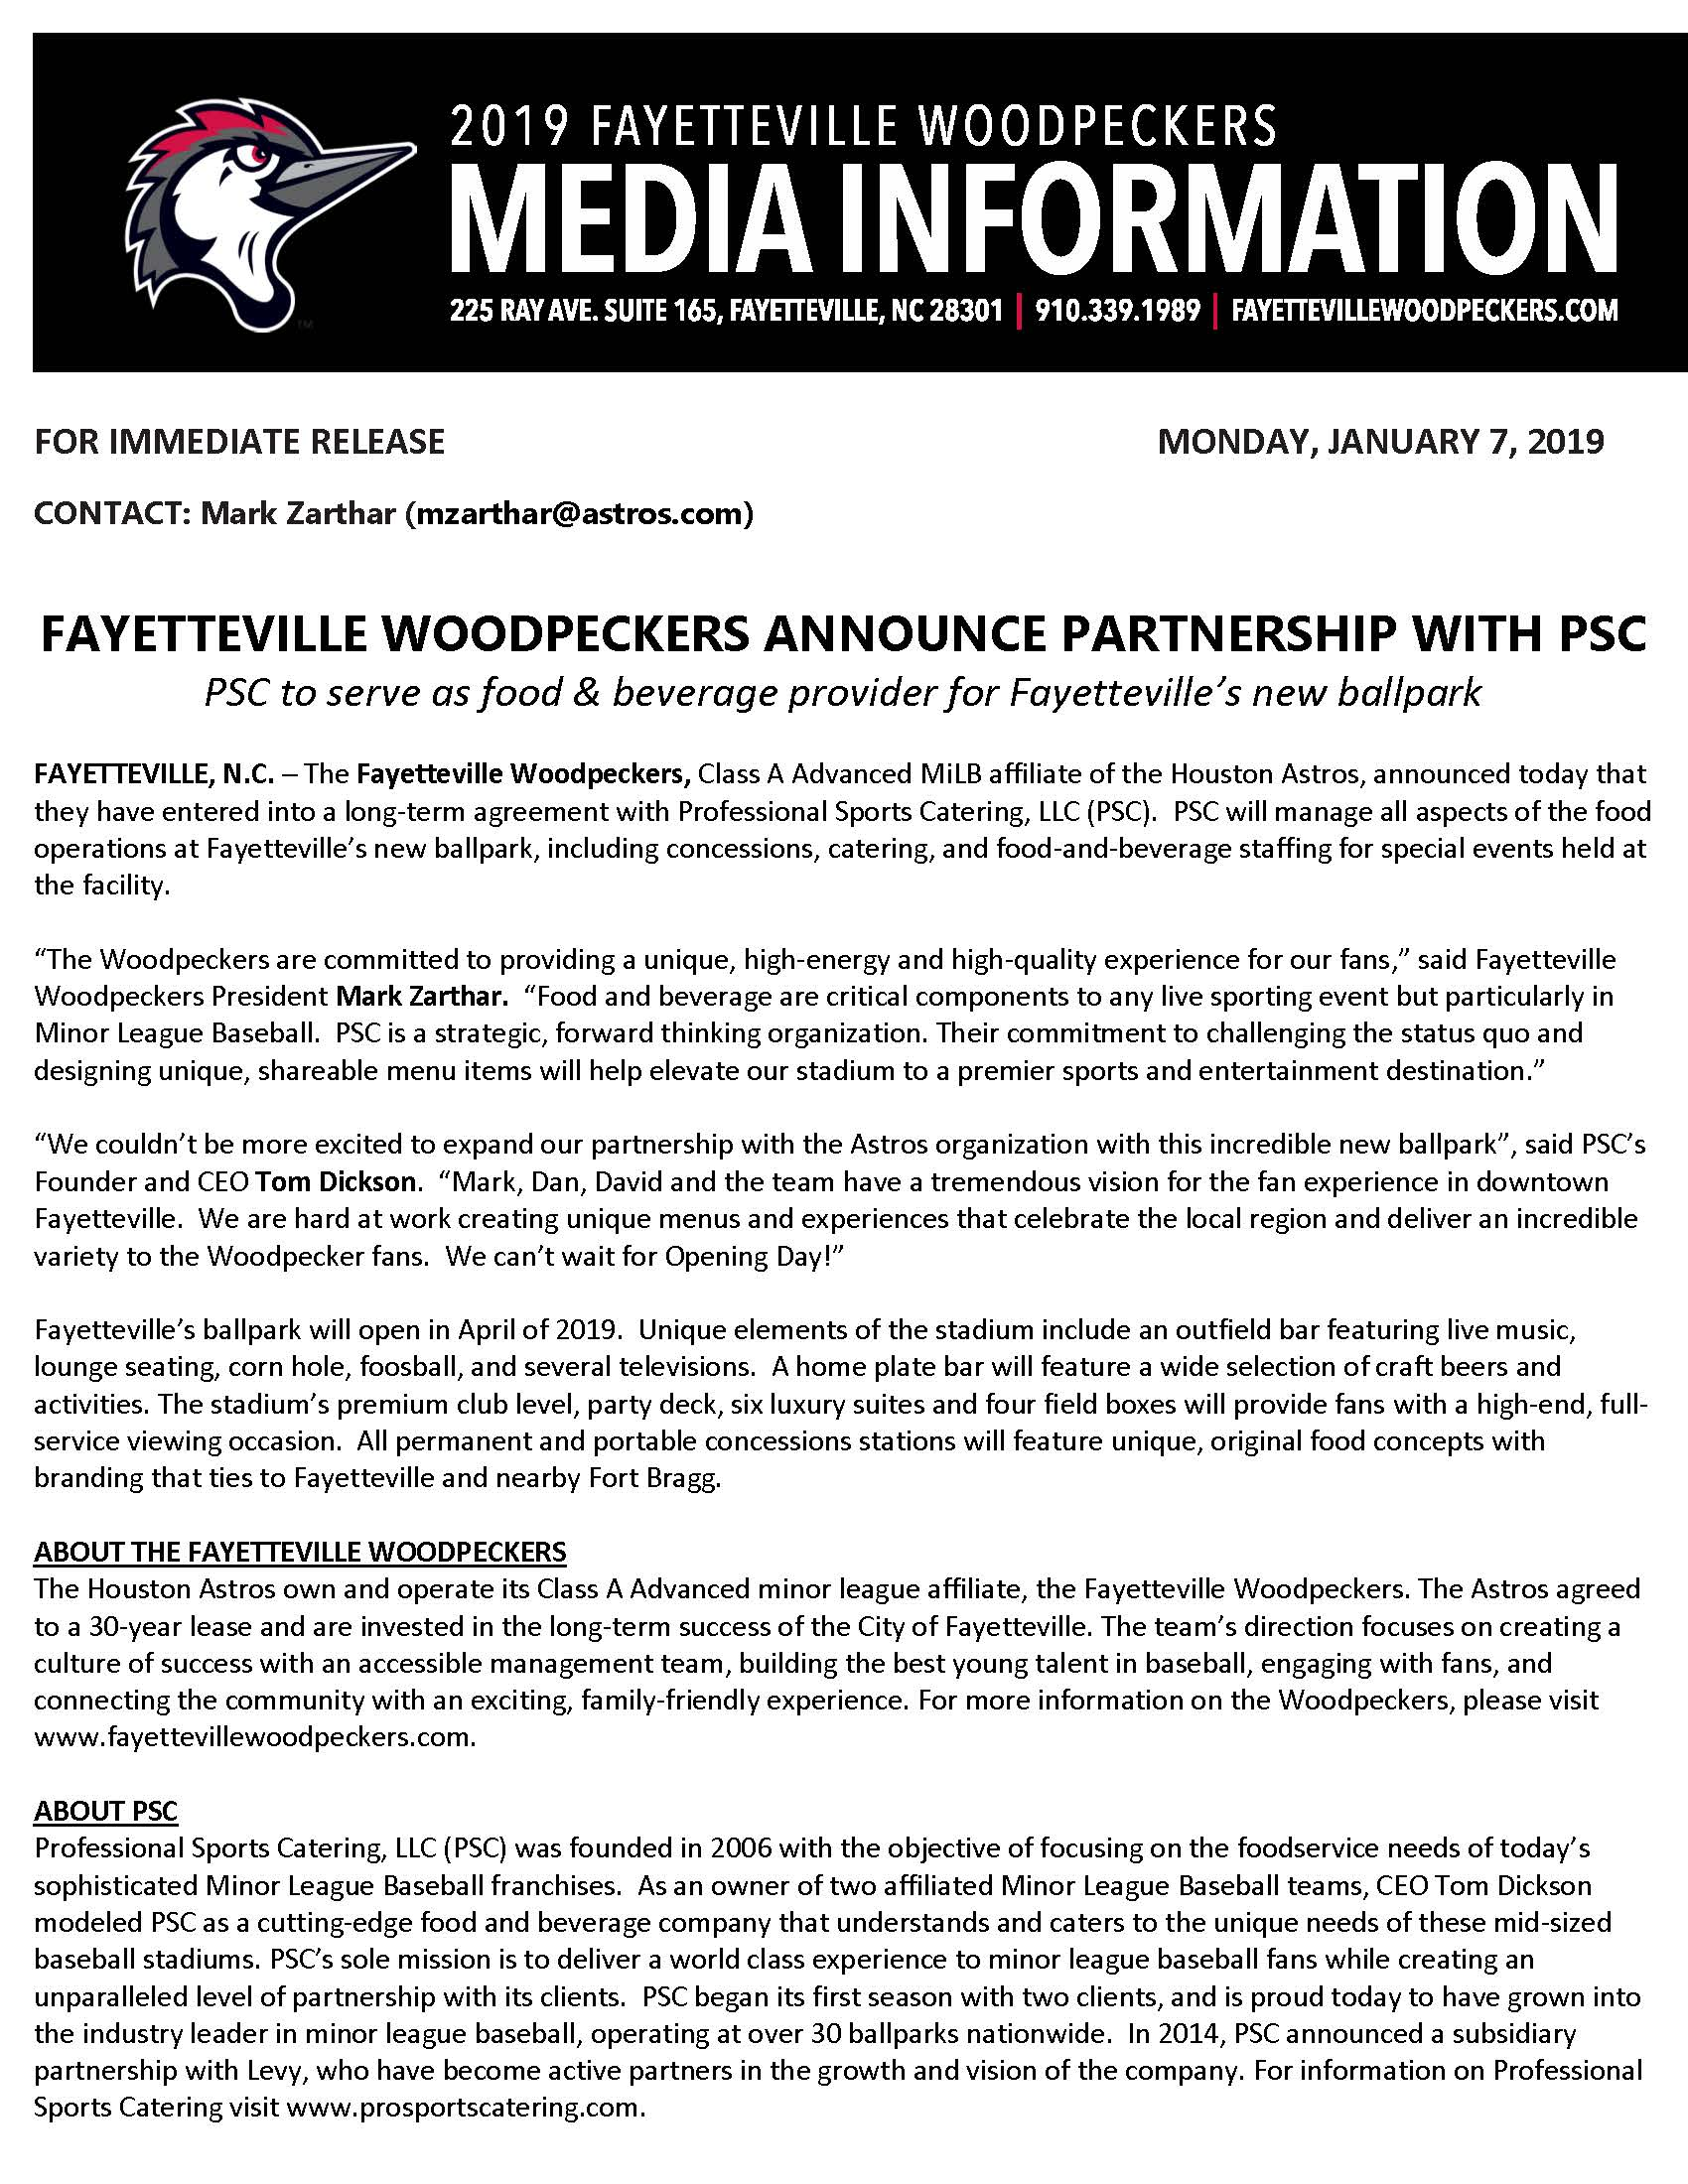 FAYETTEVILLE WOODPECKERS ANNOUNCE PARTNERSHIP WITH PSC